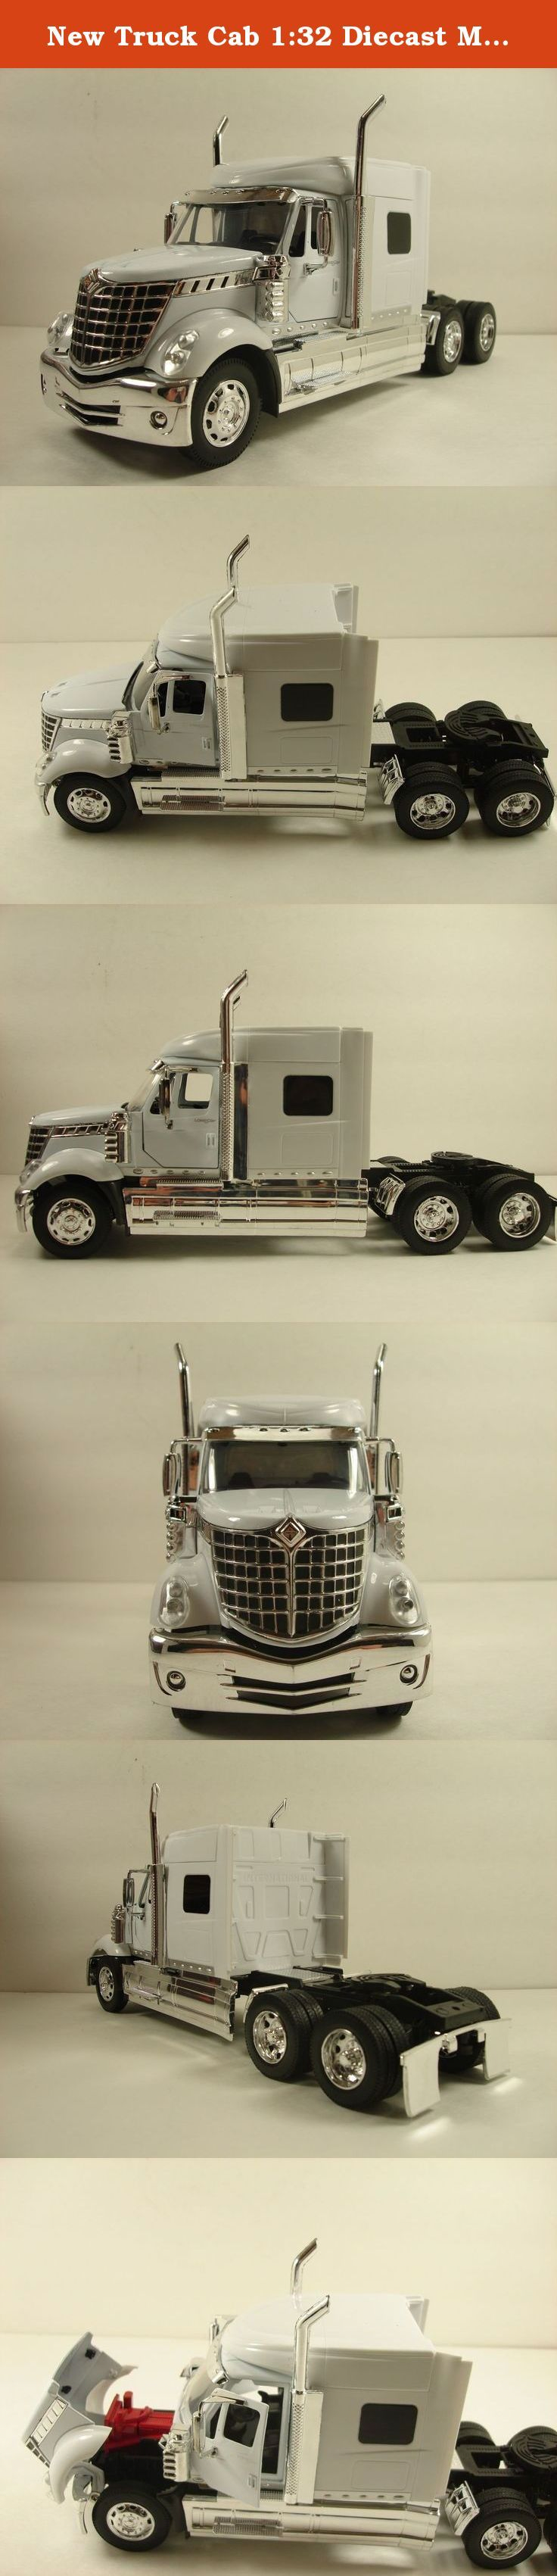 """New Truck Cab 1:32 Diecast Model Ray International LoneStar Tractor White. This is a high quality and detailed official licensed model made by NewRay The truck head is made of diecast metal and the body is made of high impact plastic The interior is modeled with steering wheel, dashboard and seats Openable front doors and hood Free wheeling truck, Rubber tire on each wheel Measurement about 10.5 """" L x 3.25""""W x 4.5""""H inches 27cm x 8cm x 11cm."""